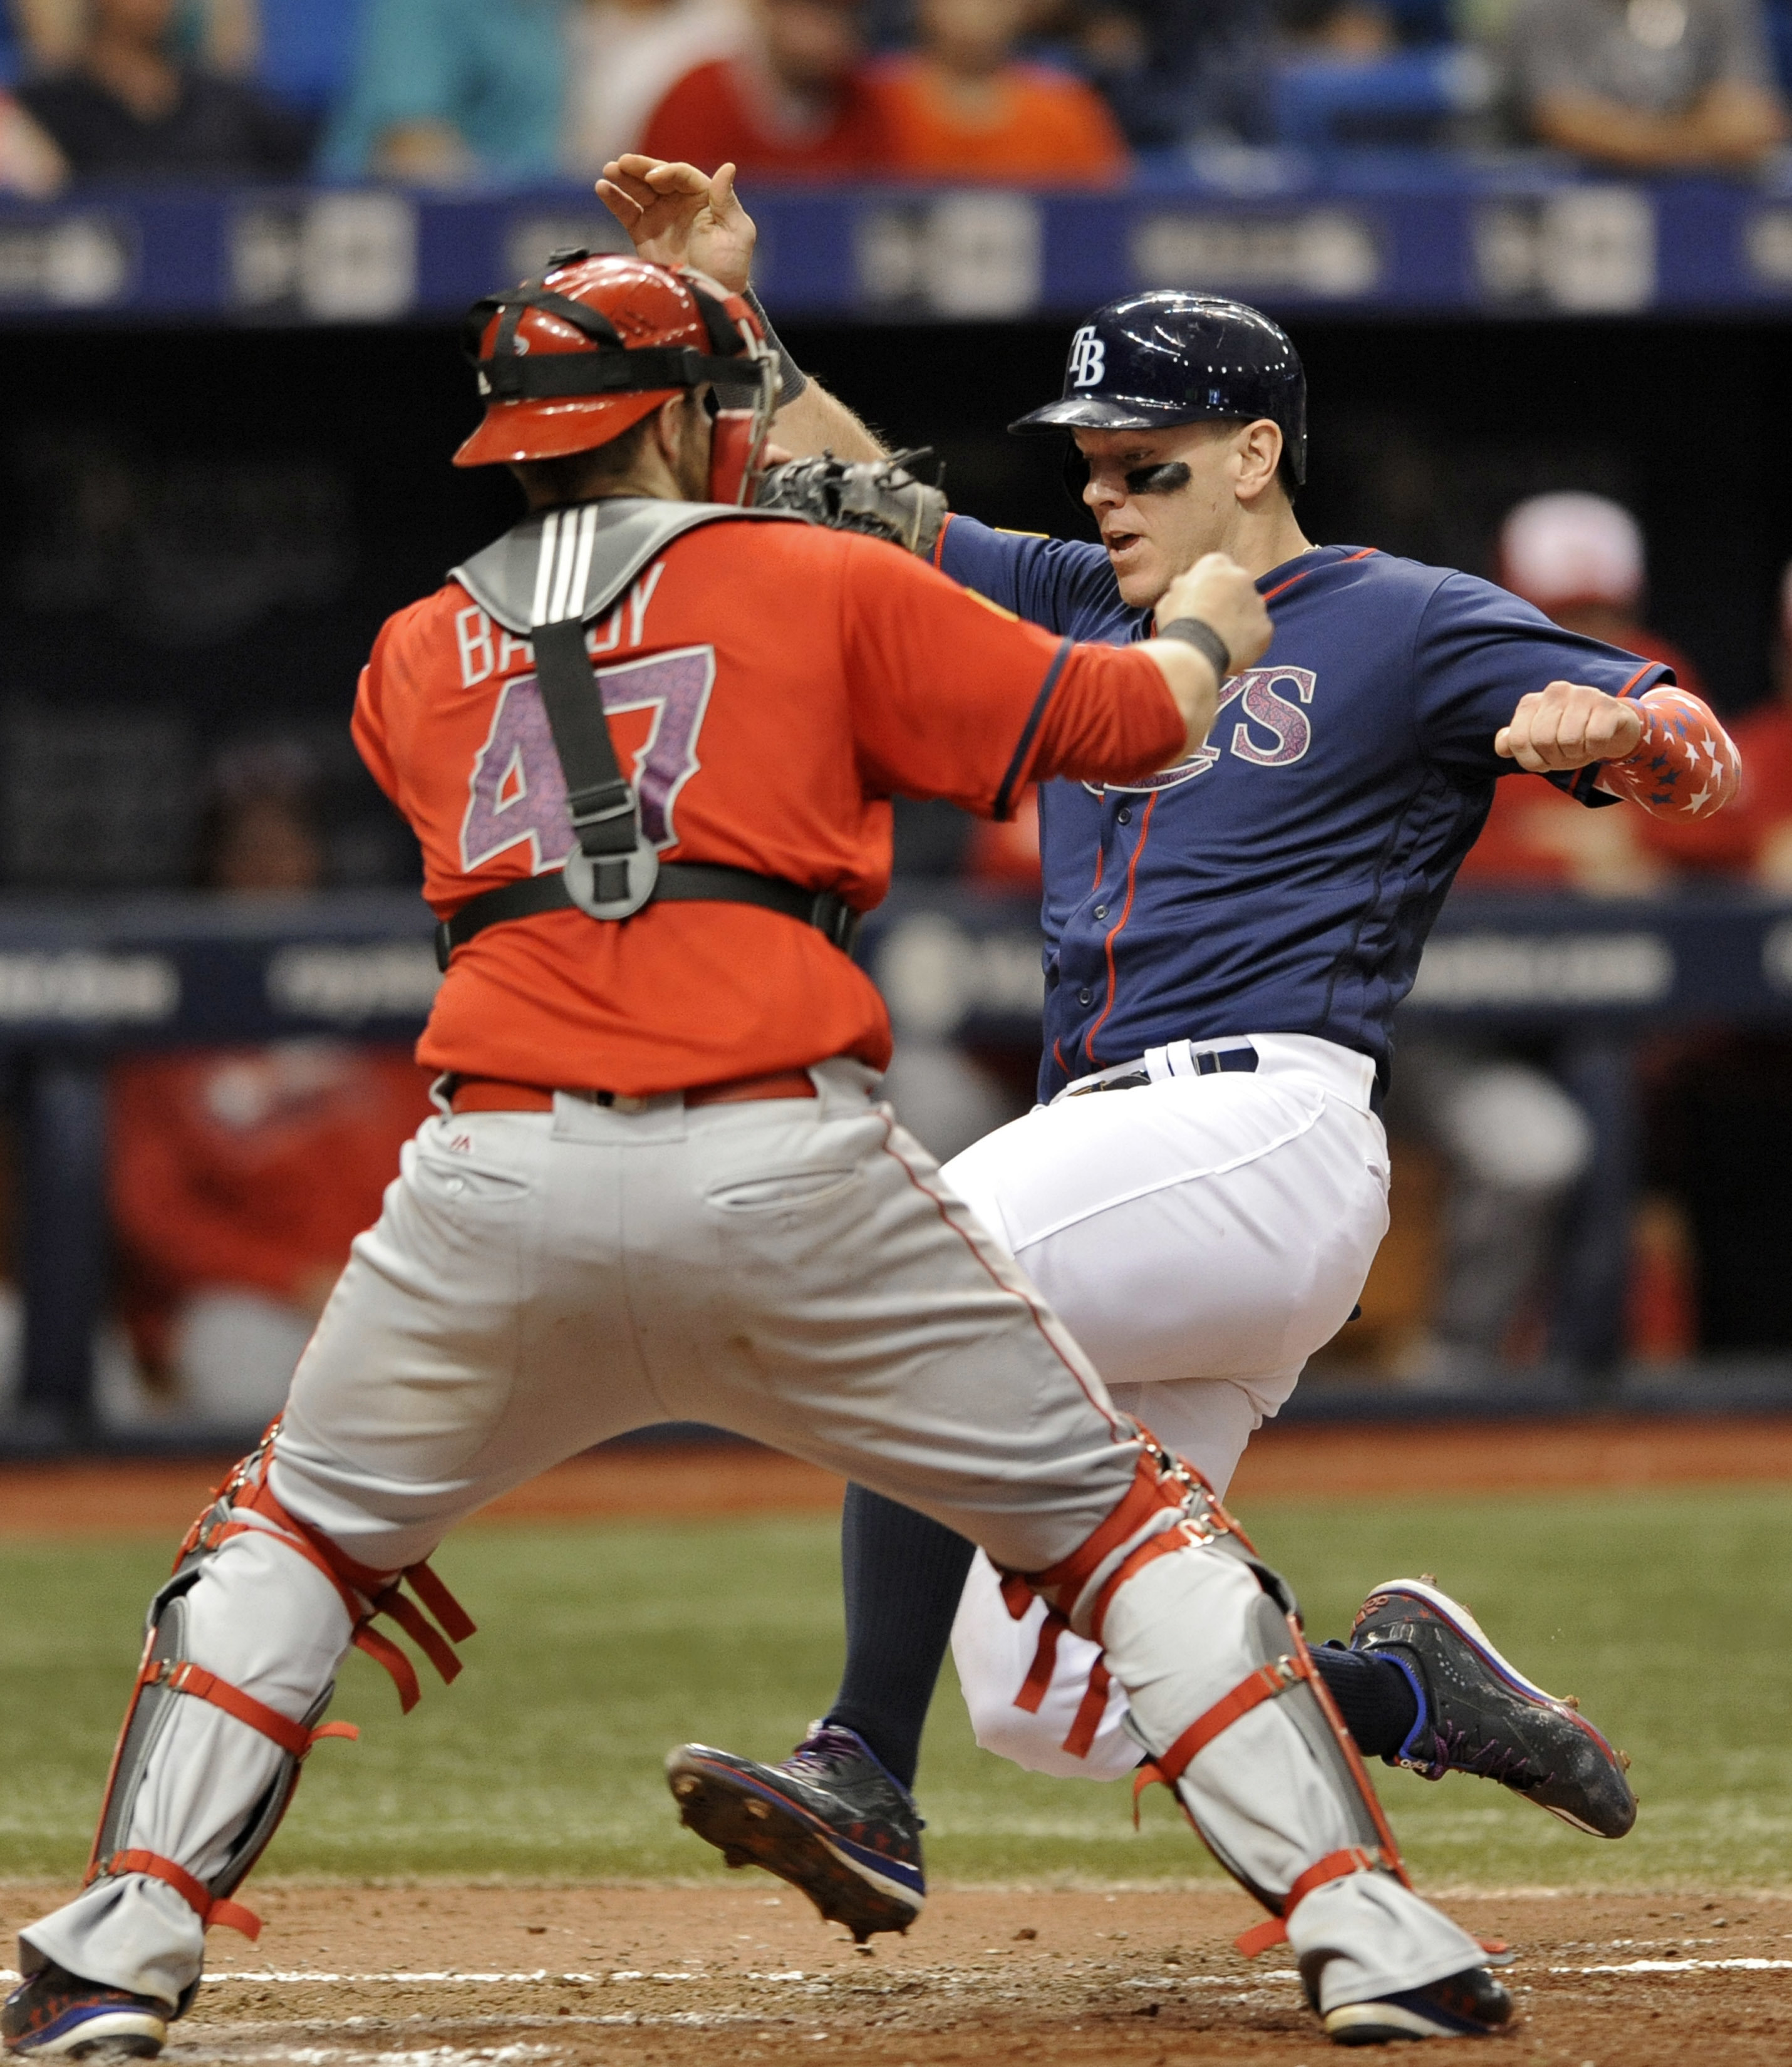 Los Angeles Angels catcher Jett Bandy (47) waits for the throw as Tampa Bay Rays' Logan Morrison, right, scores on a Steven Souza Jr. double off Los Angeles reliever Fernando Salas during the sixth inning of a baseball game Monday, July 4, 2016, in St. Pe